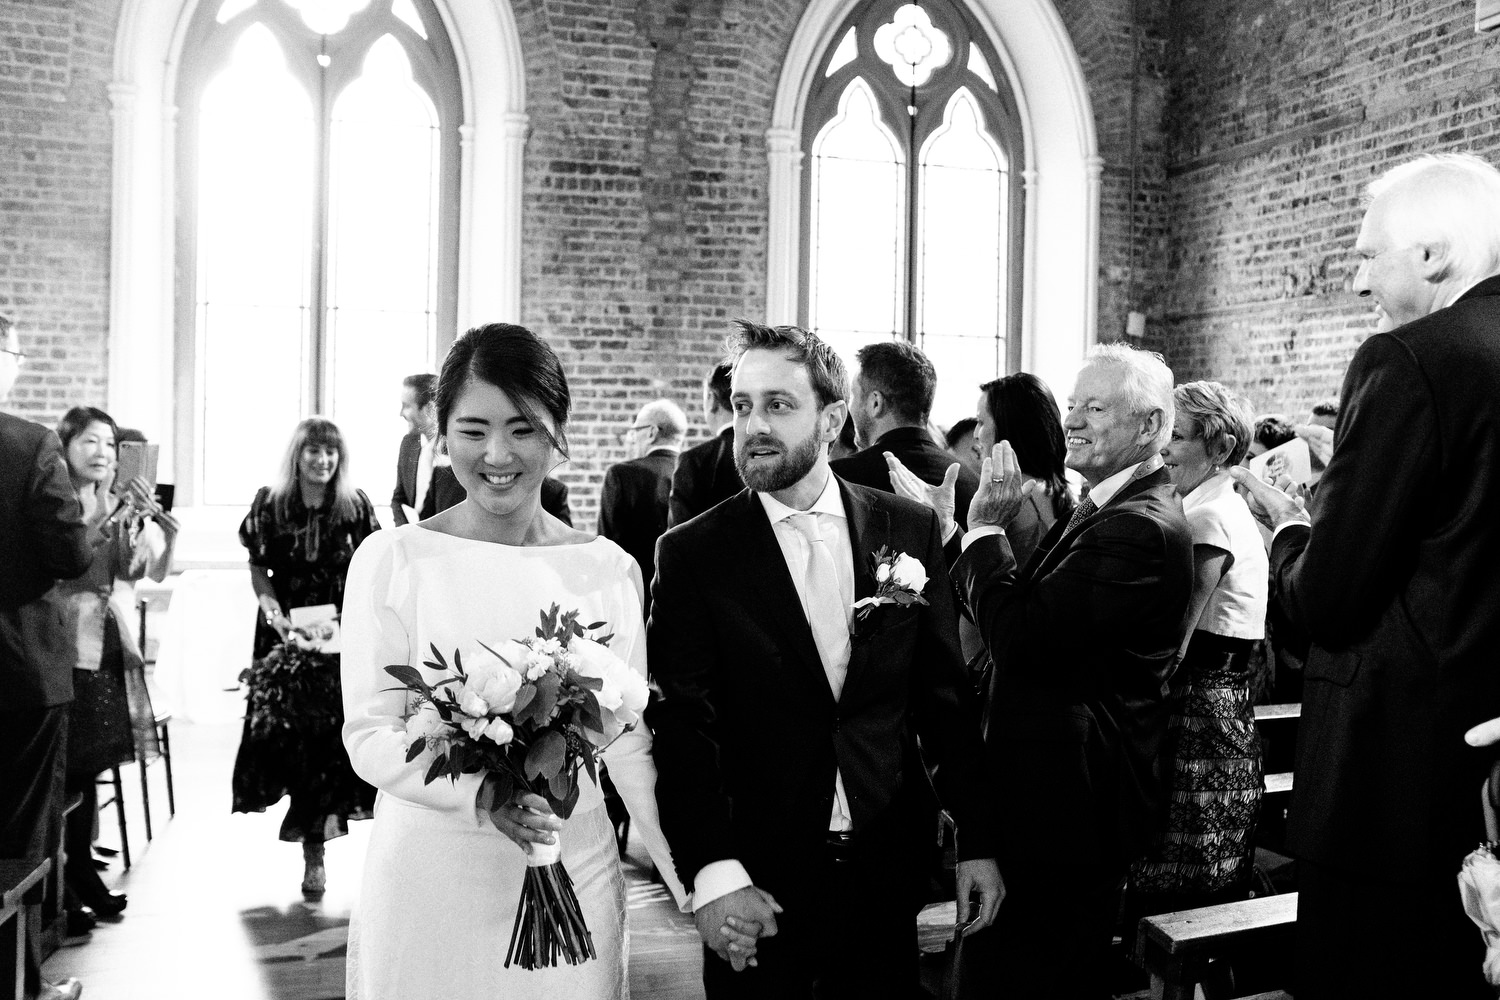 dmp0306_dublin_alley_photography_david_mcclelland_ceremony_humanist_documentary_theatre_smock_wedding_photographer